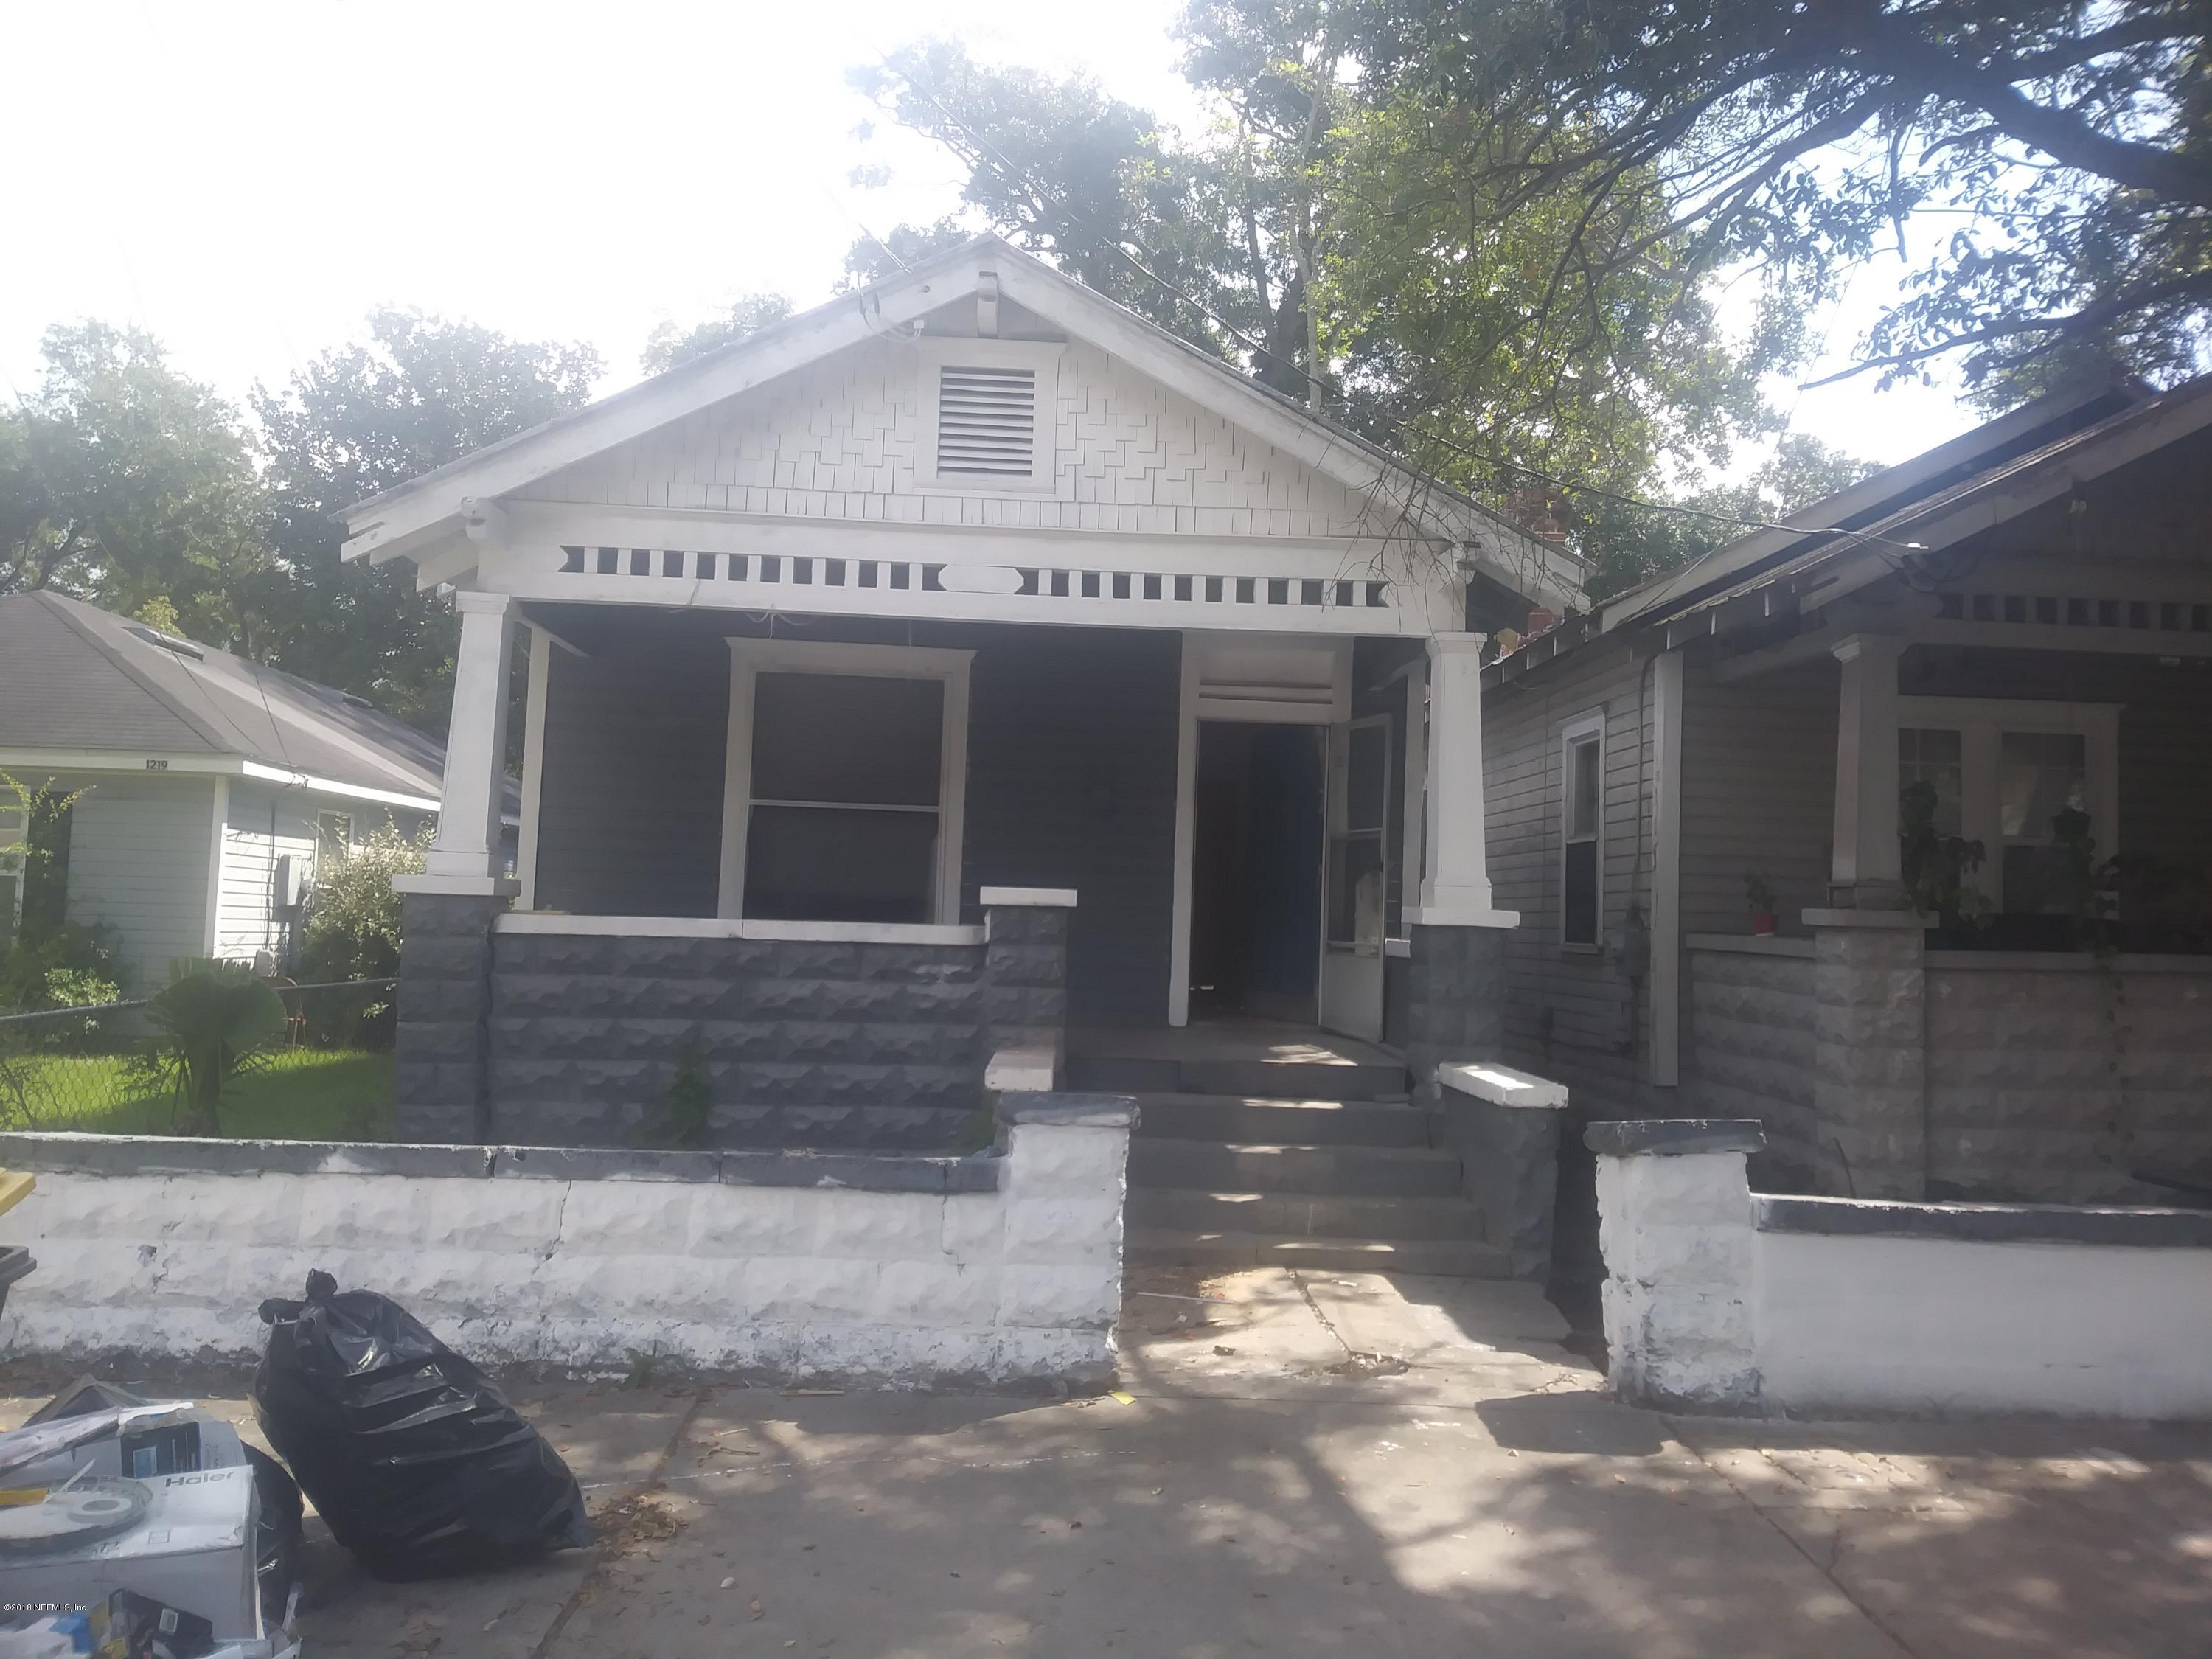 1215 FLORIDA, JACKSONVILLE, FLORIDA 32206, 2 Bedrooms Bedrooms, ,1 BathroomBathrooms,Residential - single family,For sale,FLORIDA,959212